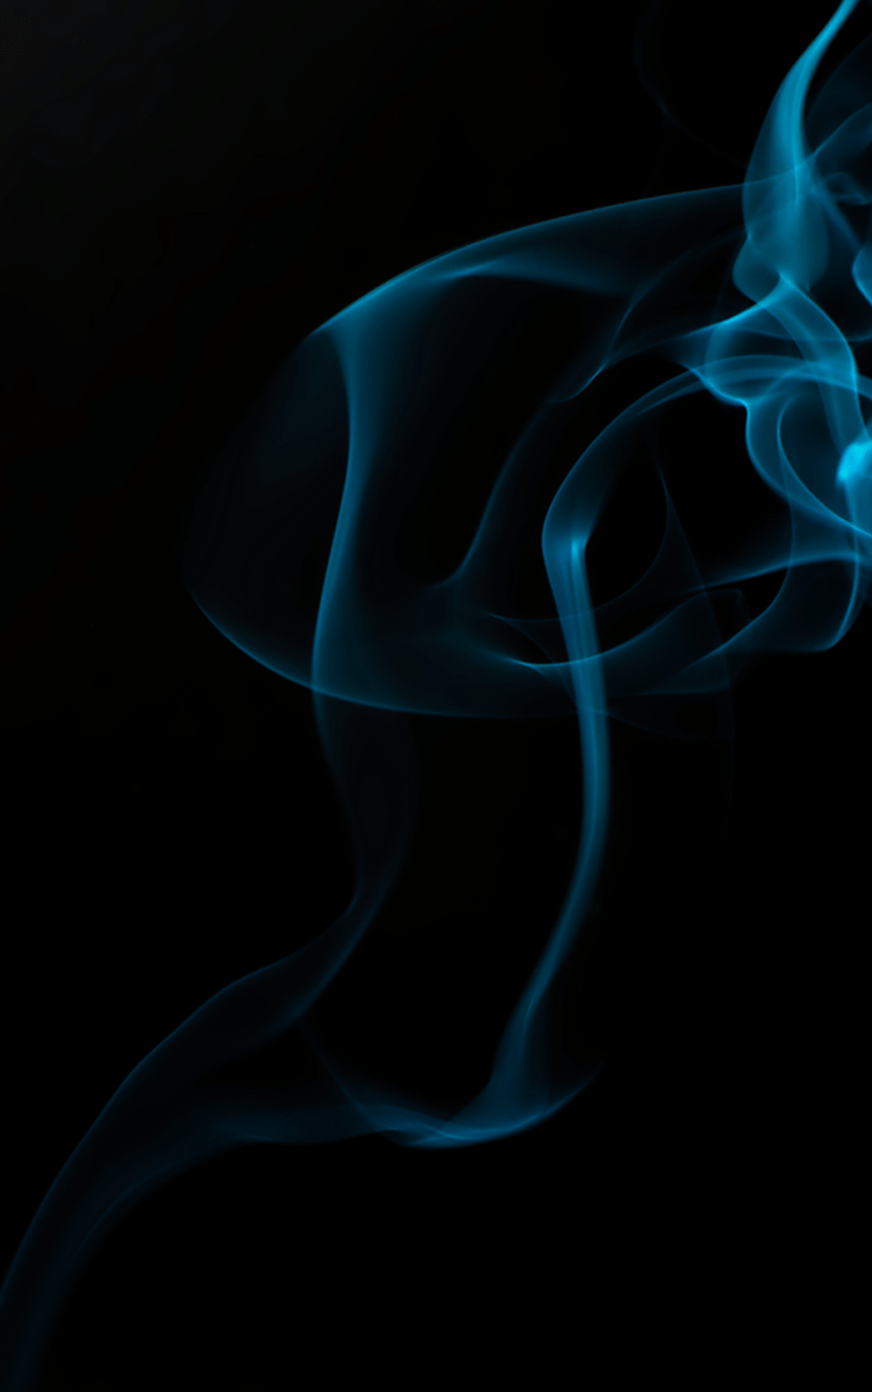 blue smoke against a black background